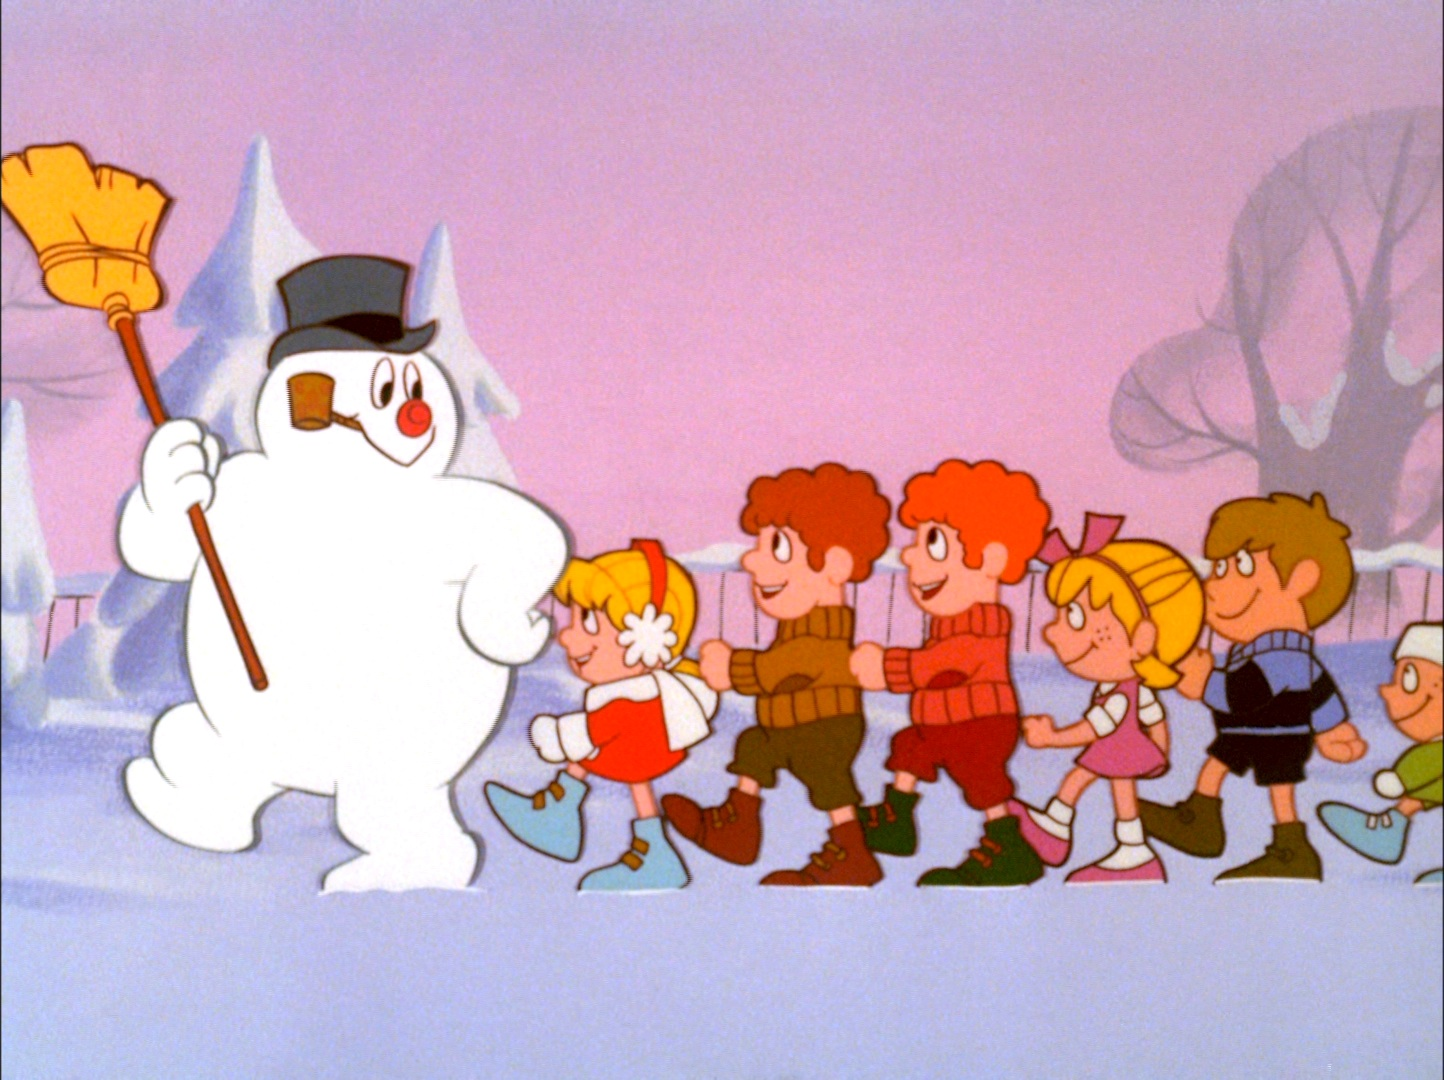 Frosty the Snowman Day: Monday, December 11